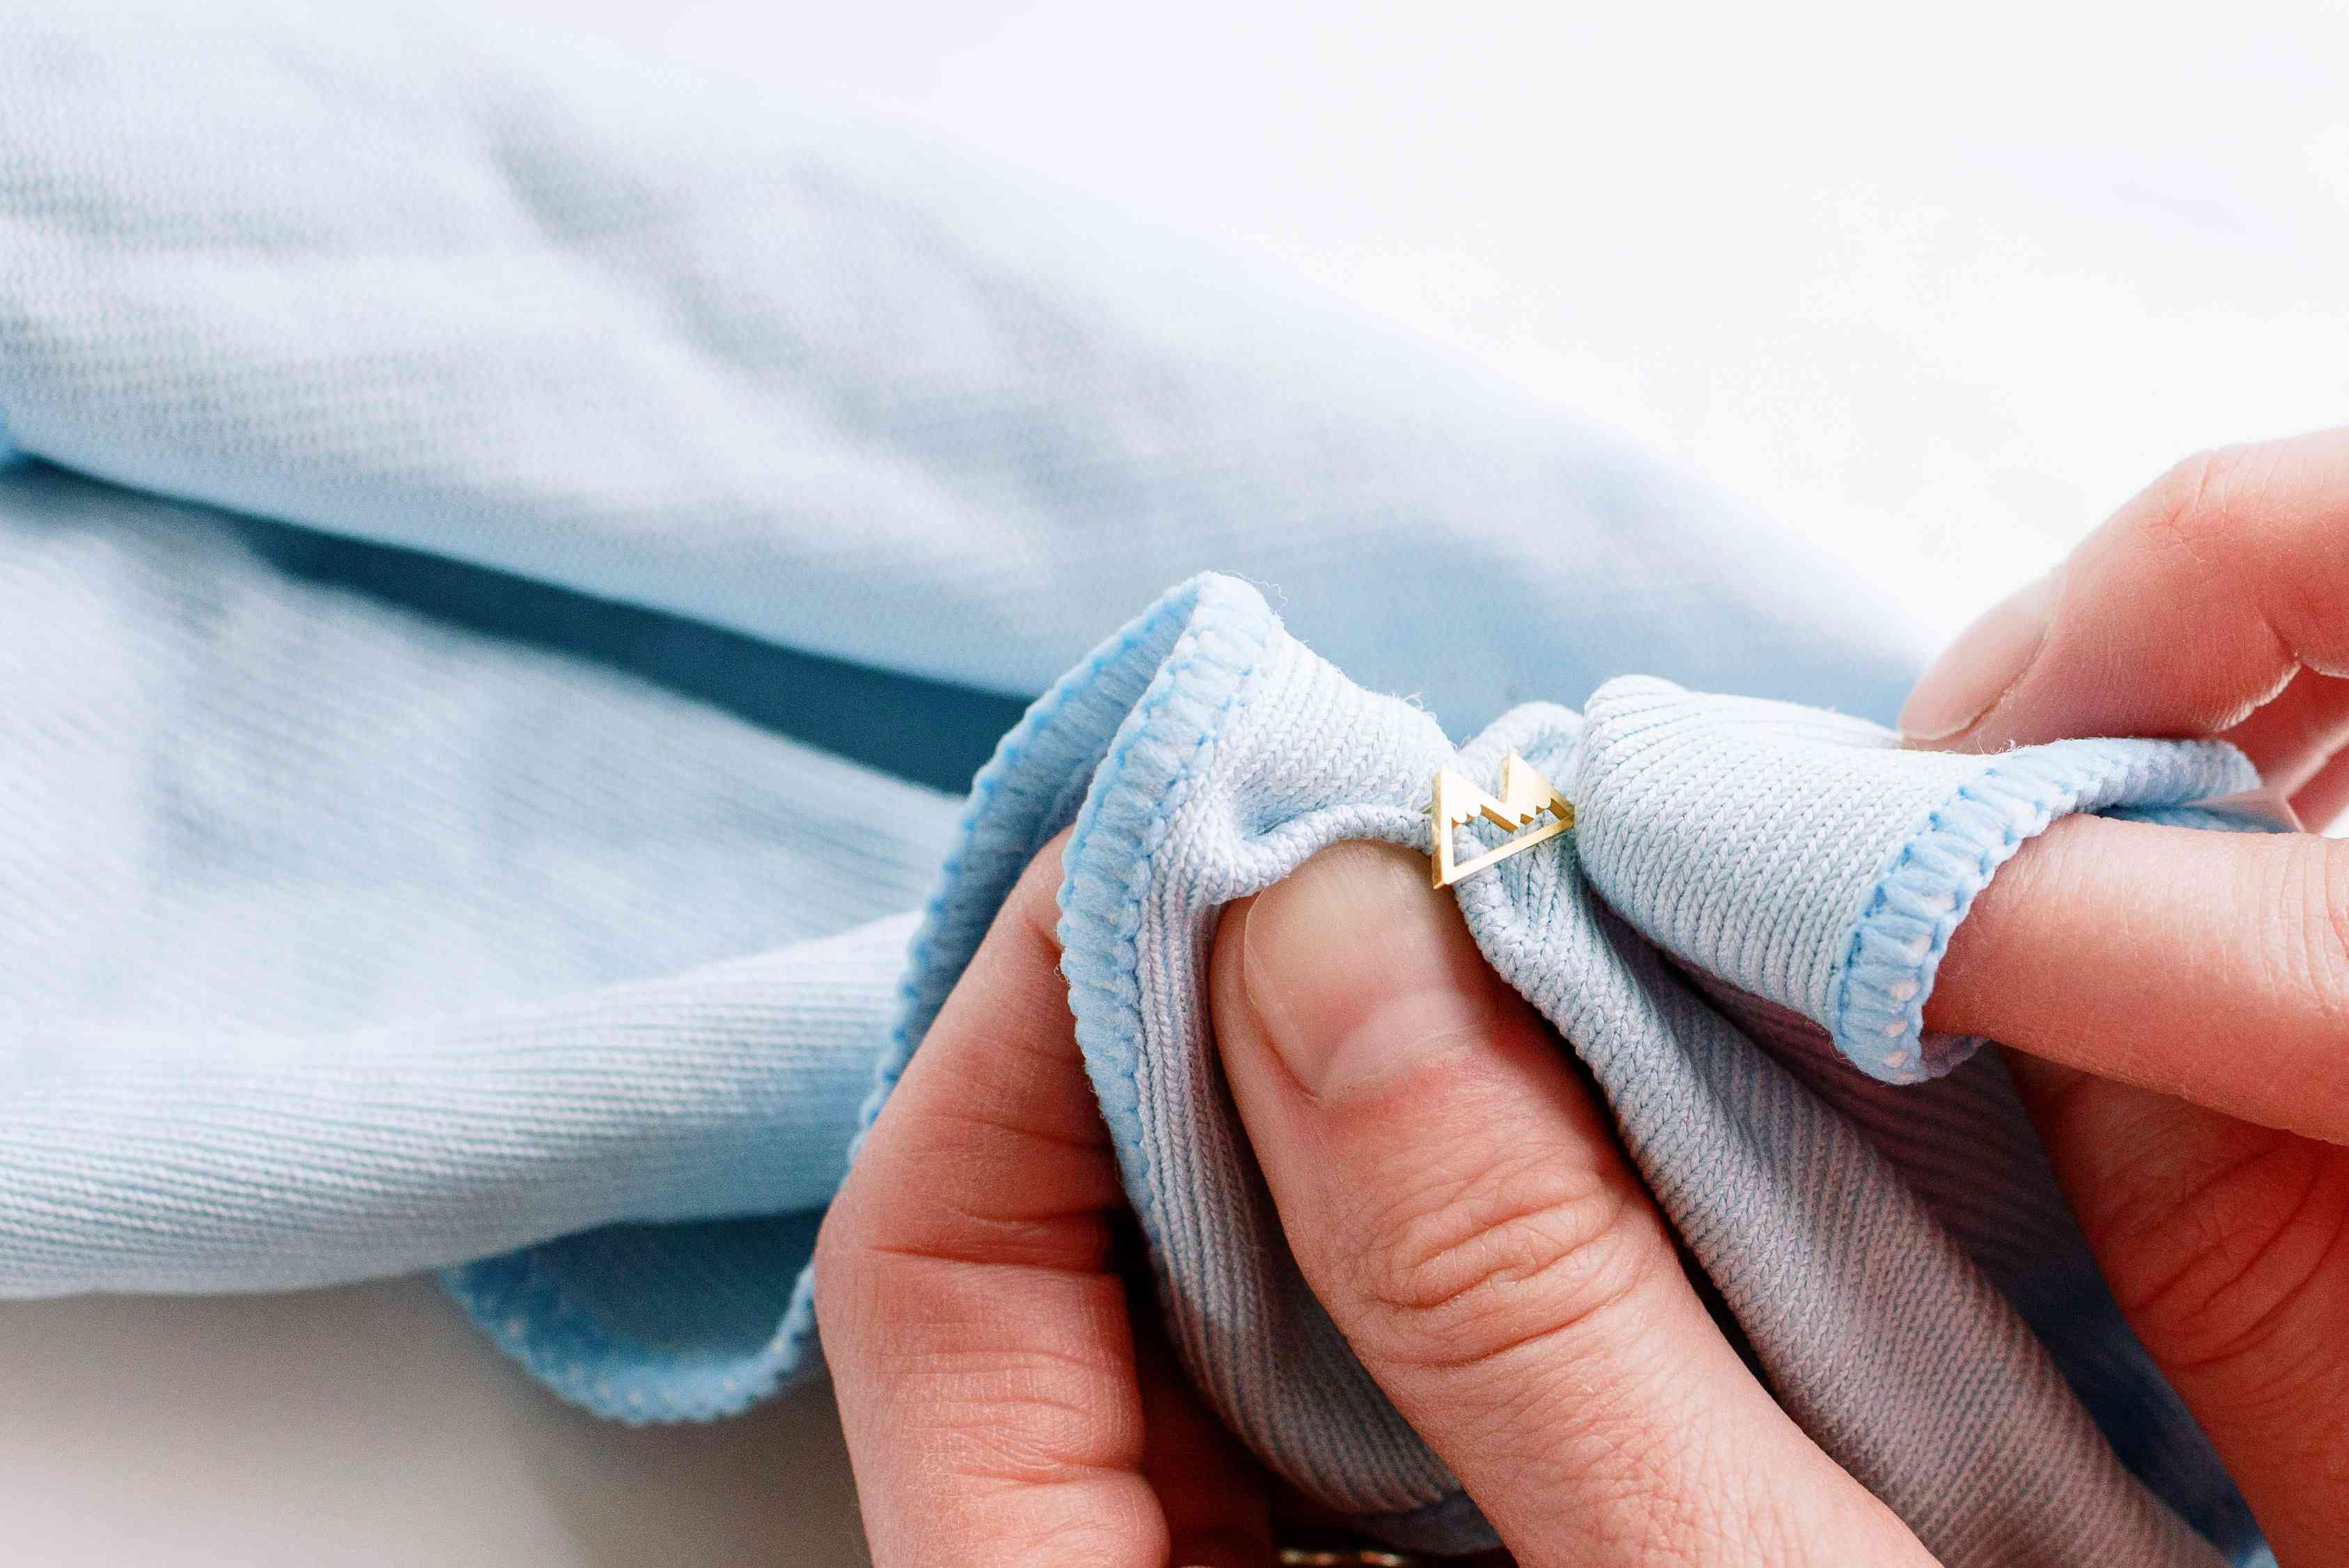 buffing jewelry with a microfiber cloth